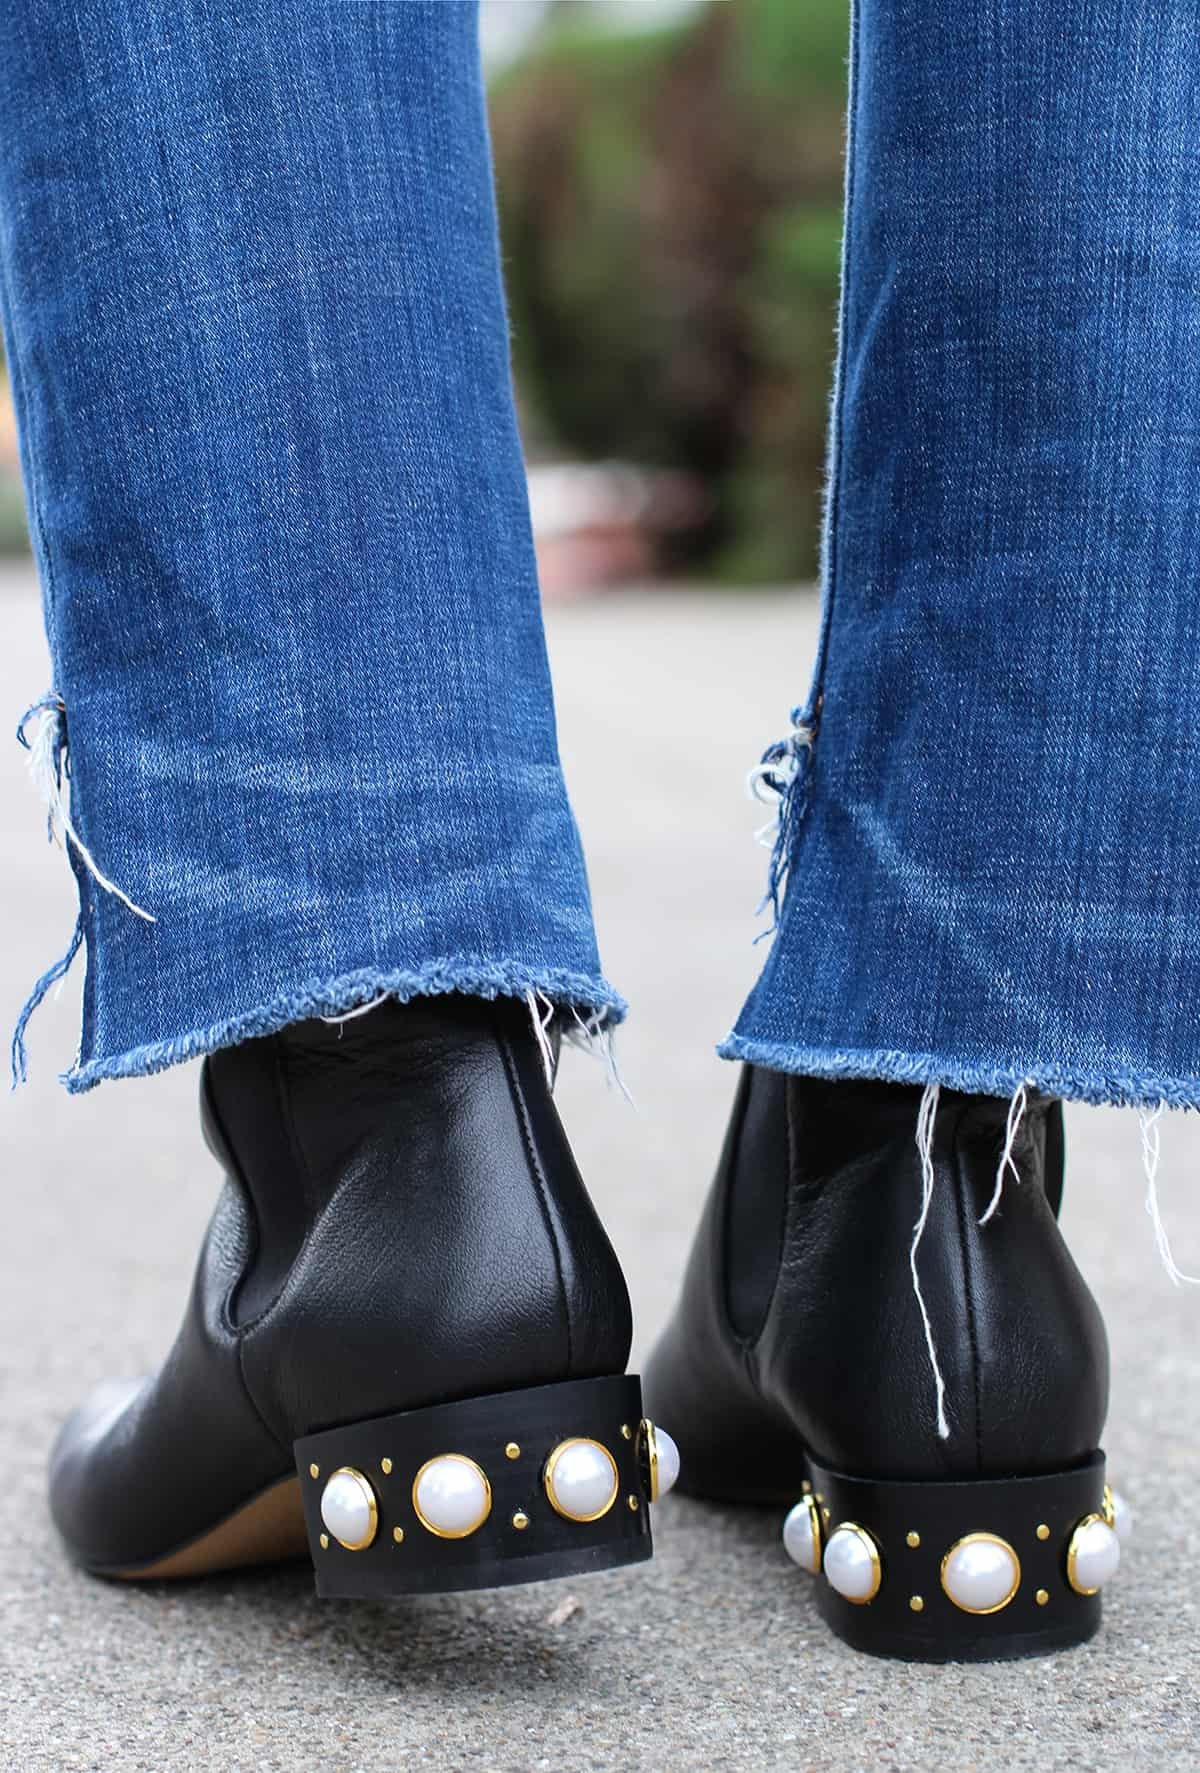 Pearl studded boots